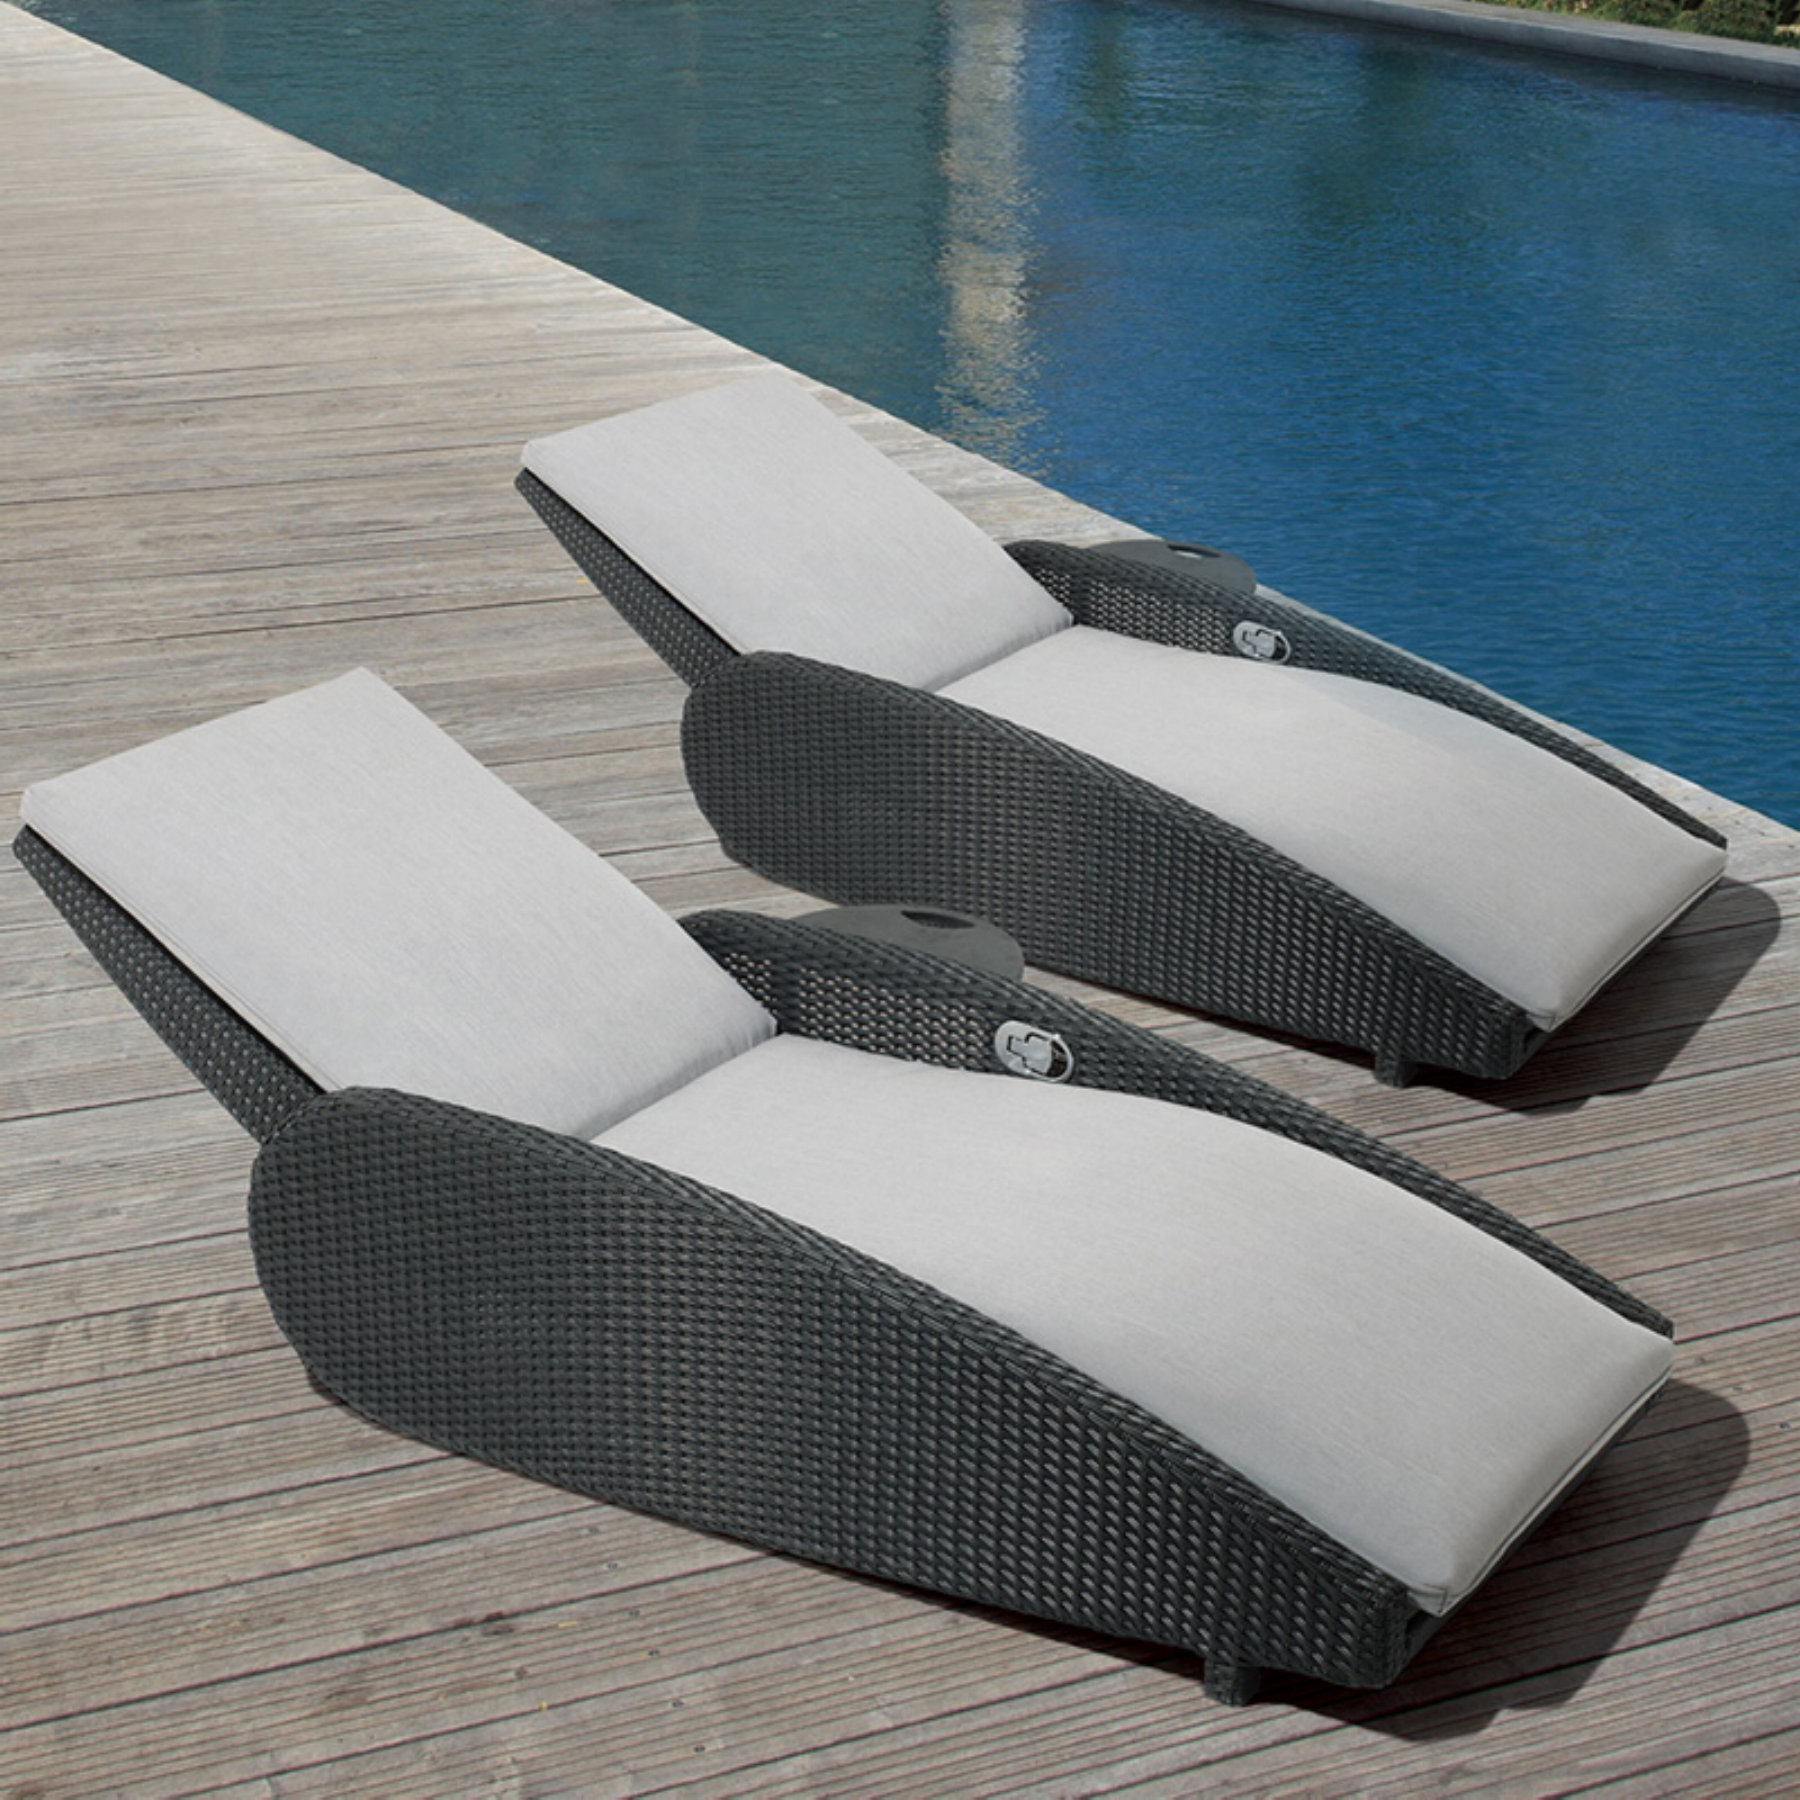 Most Recently Released Lounge Chairs In White With Grey Cushions Regarding Ove Decors Sevilla Gray Outdoor Chaise Lounge Chair – Set Of (View 7 of 25)